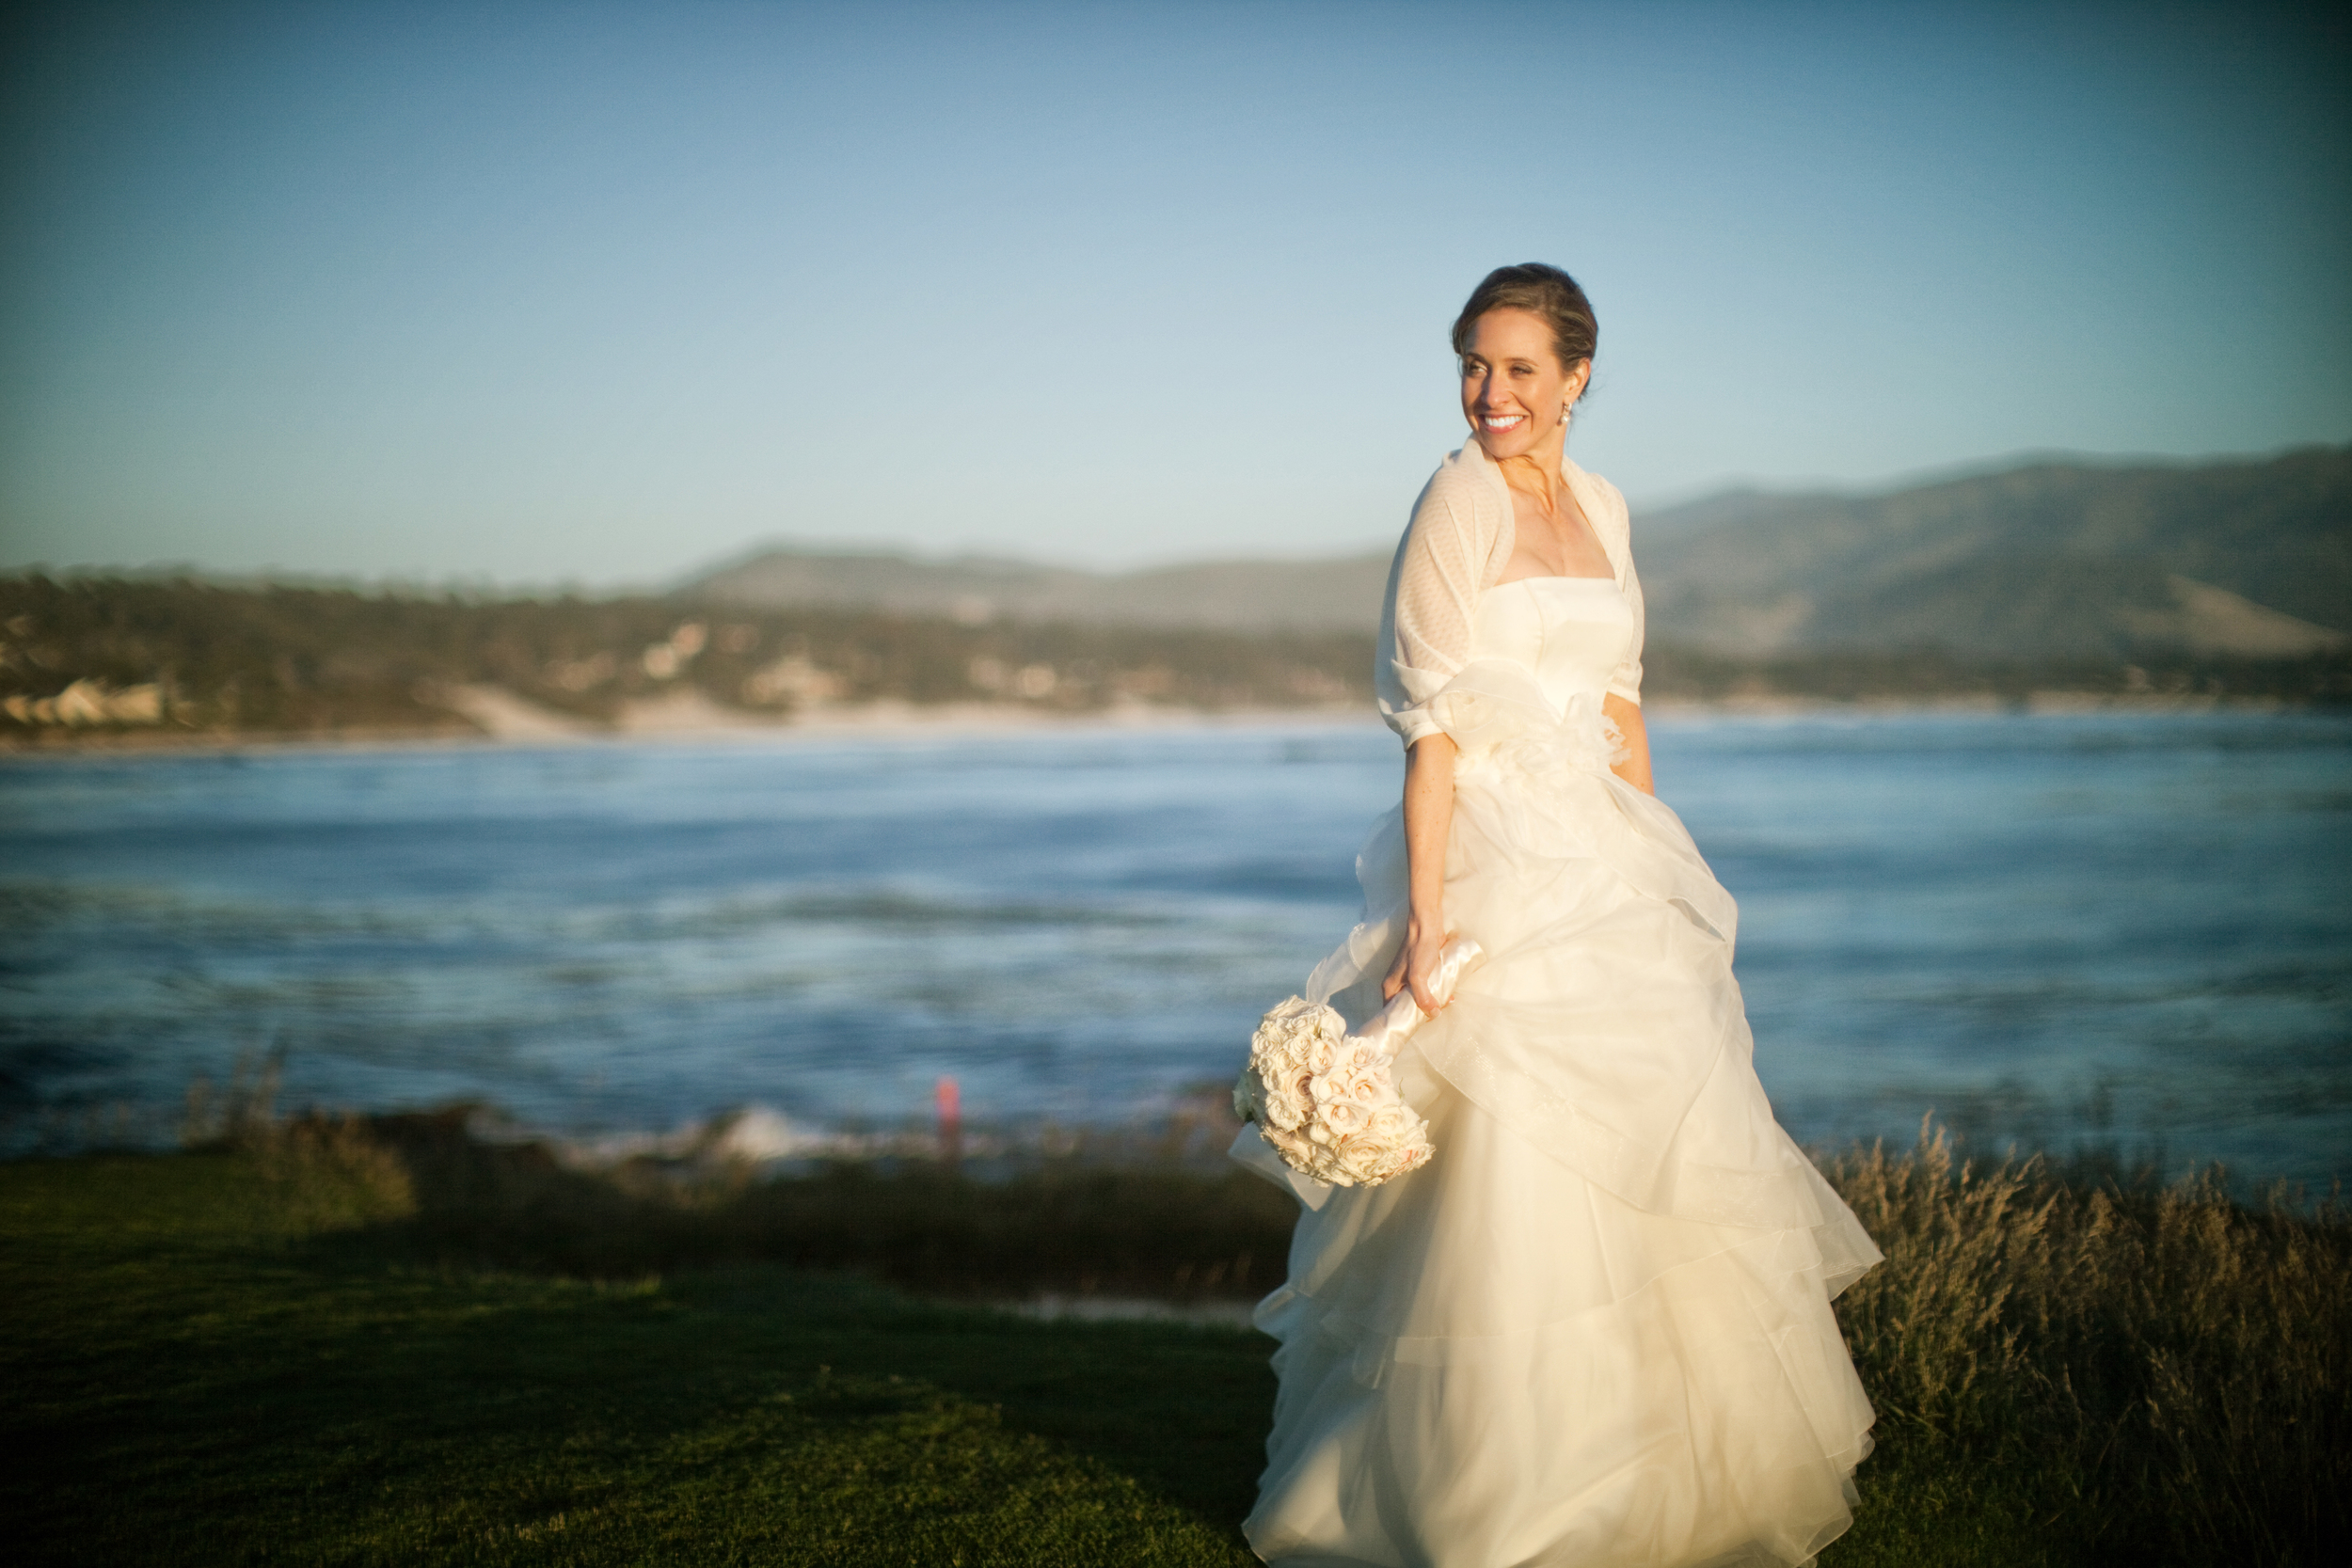 This was taken by the 7th hole in Pebble Beach.  The reception was at the Beach and Tennis Club on a perfect day for a wedding.